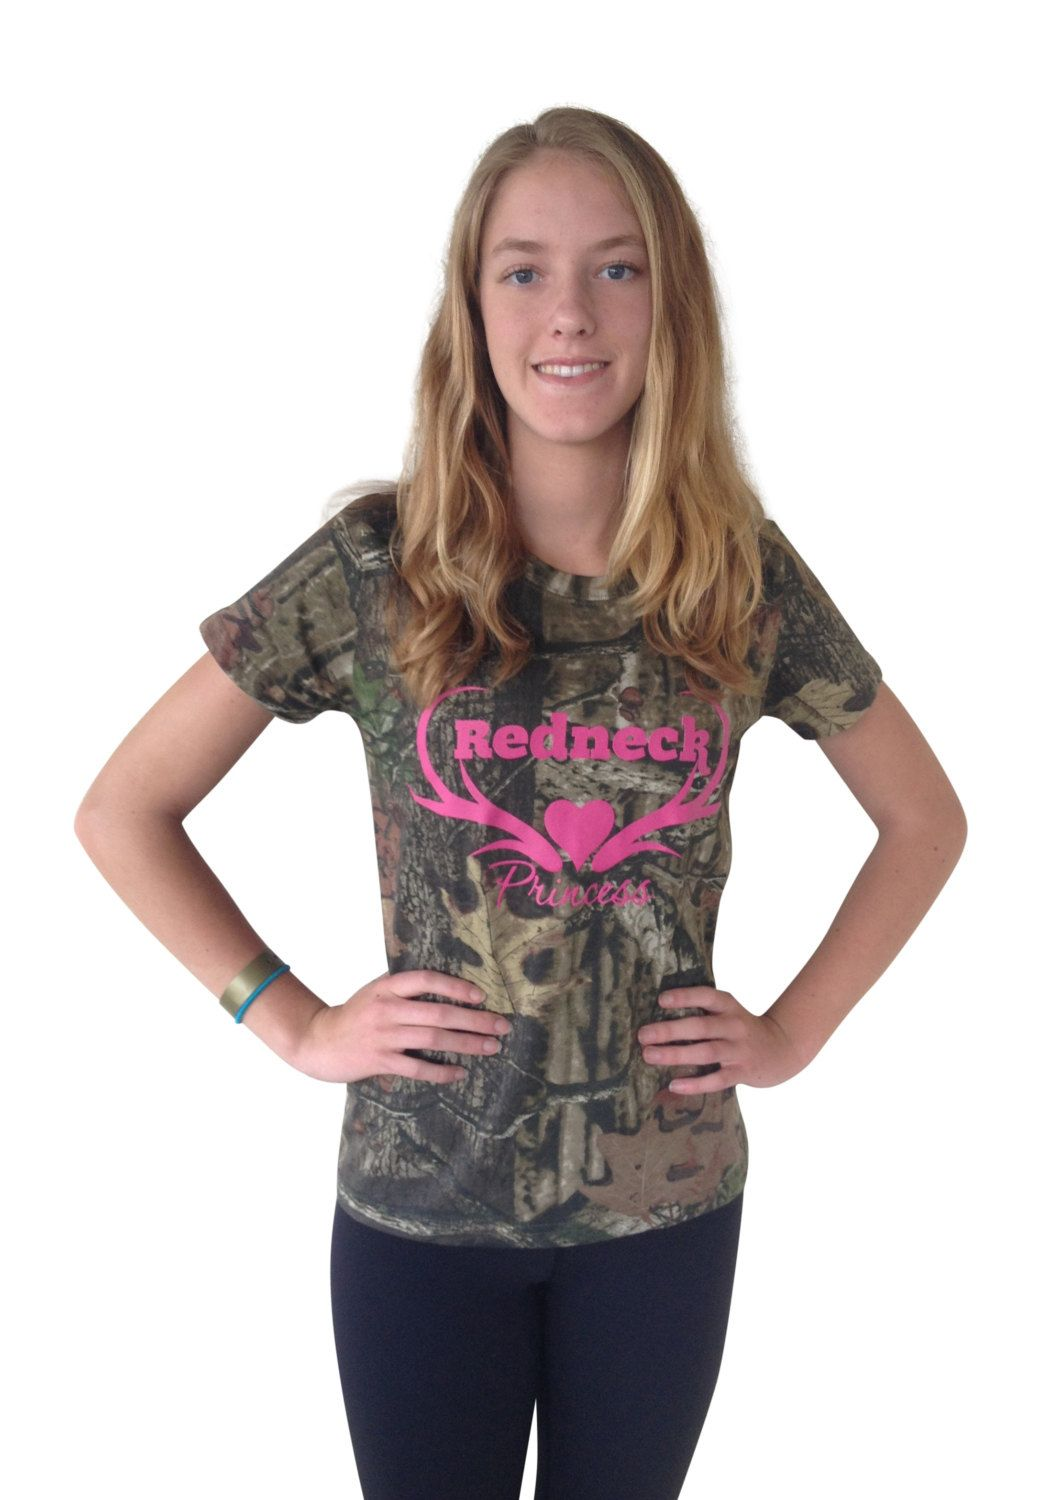 44239427e Redneck Princess Mossy Oak Tshirt Womens Juniors Ladies Russell Outdoors  Break Up Infinity Camo Cotton Explorer Graphic T-Shirt Top Tee NWT by ...